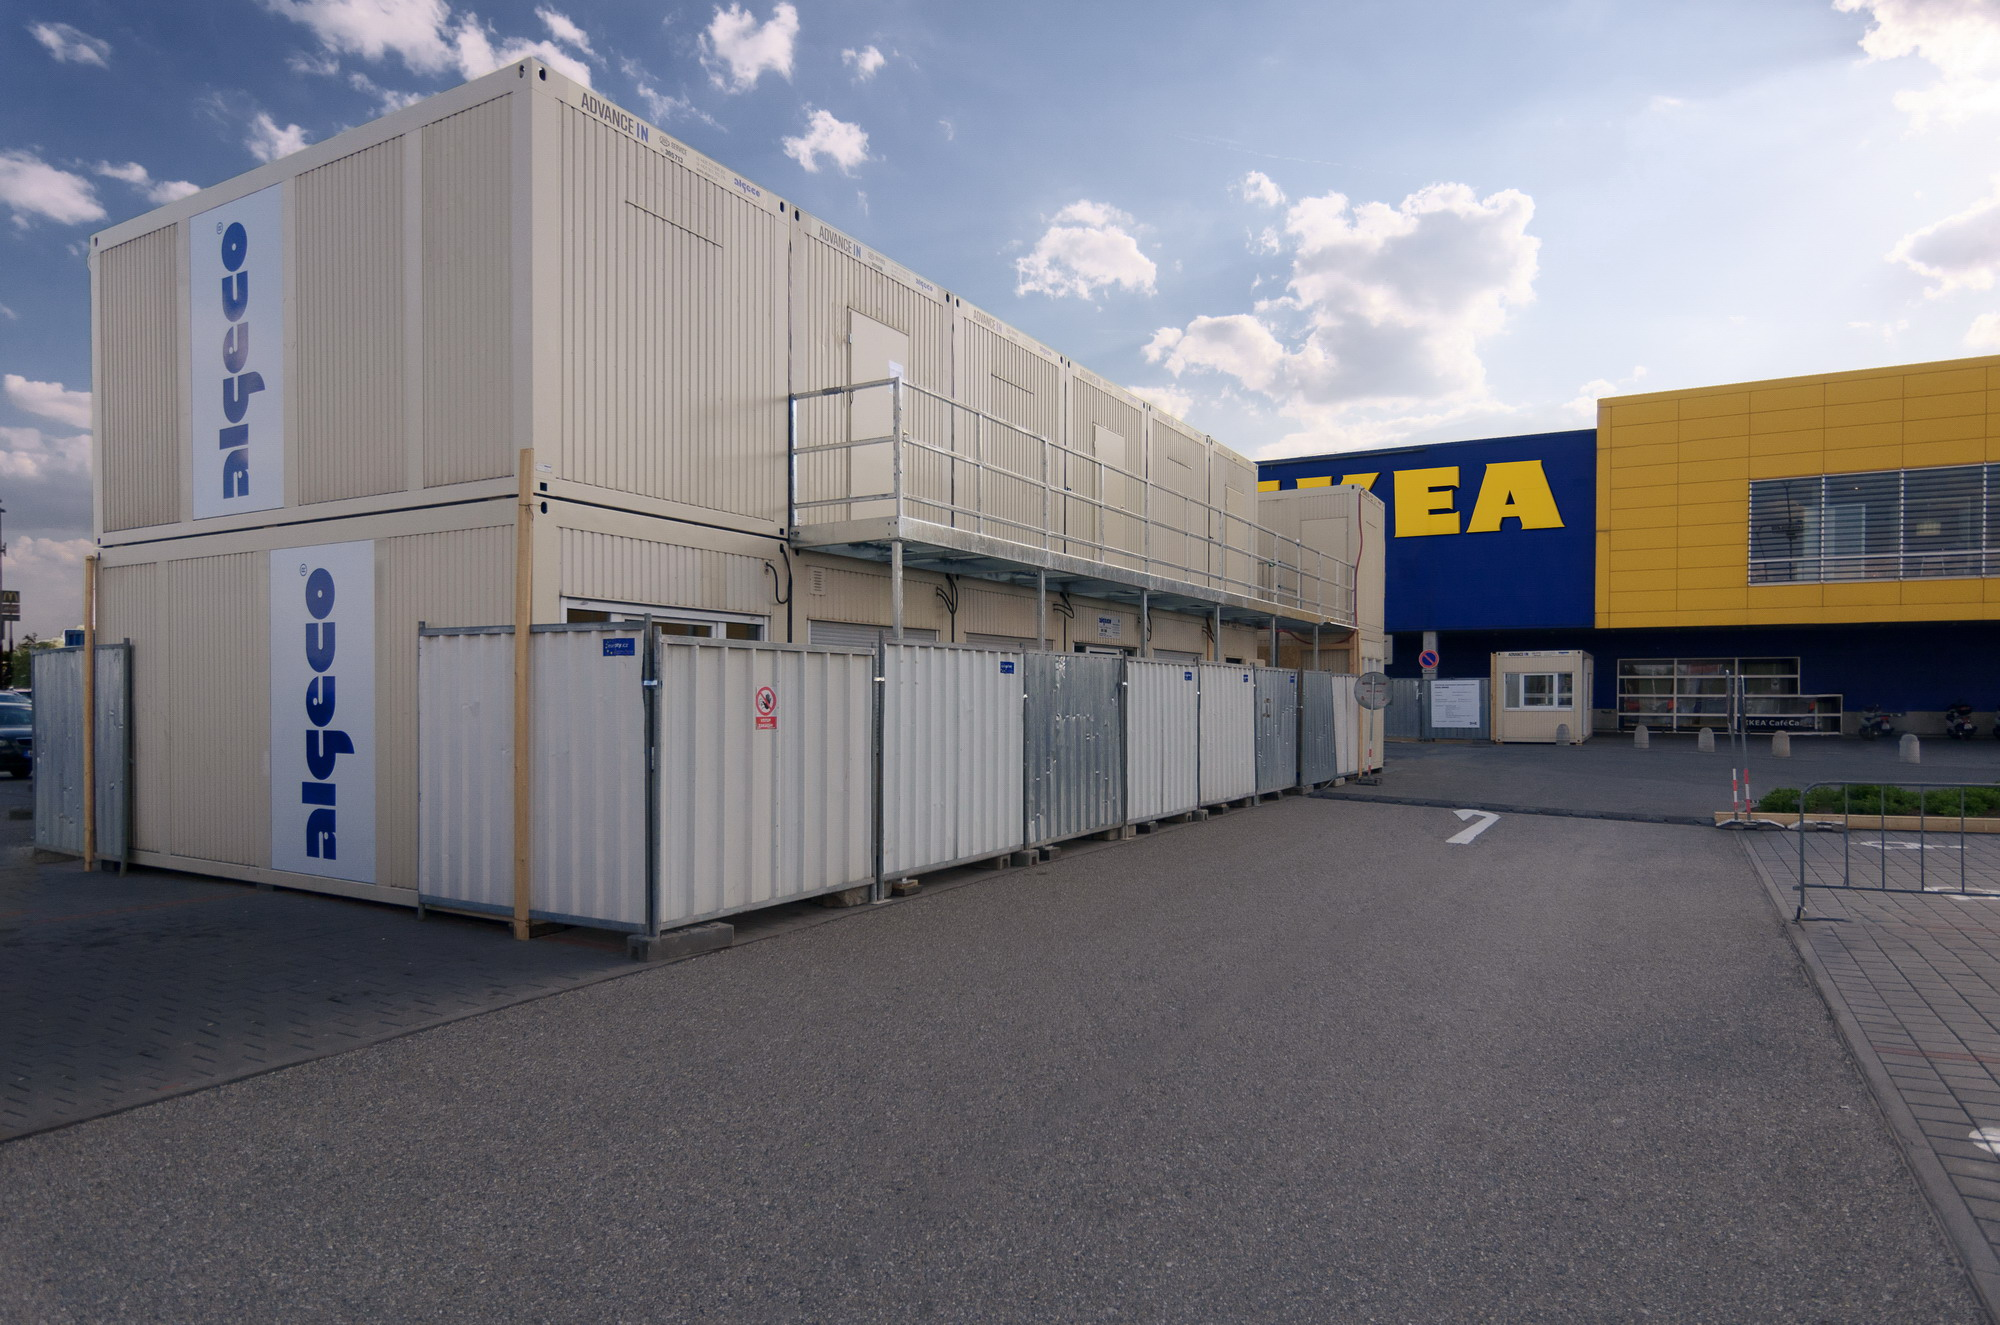 9c3525708 Modular ALGECO building as facilities for the renovation of IKEA in Brno